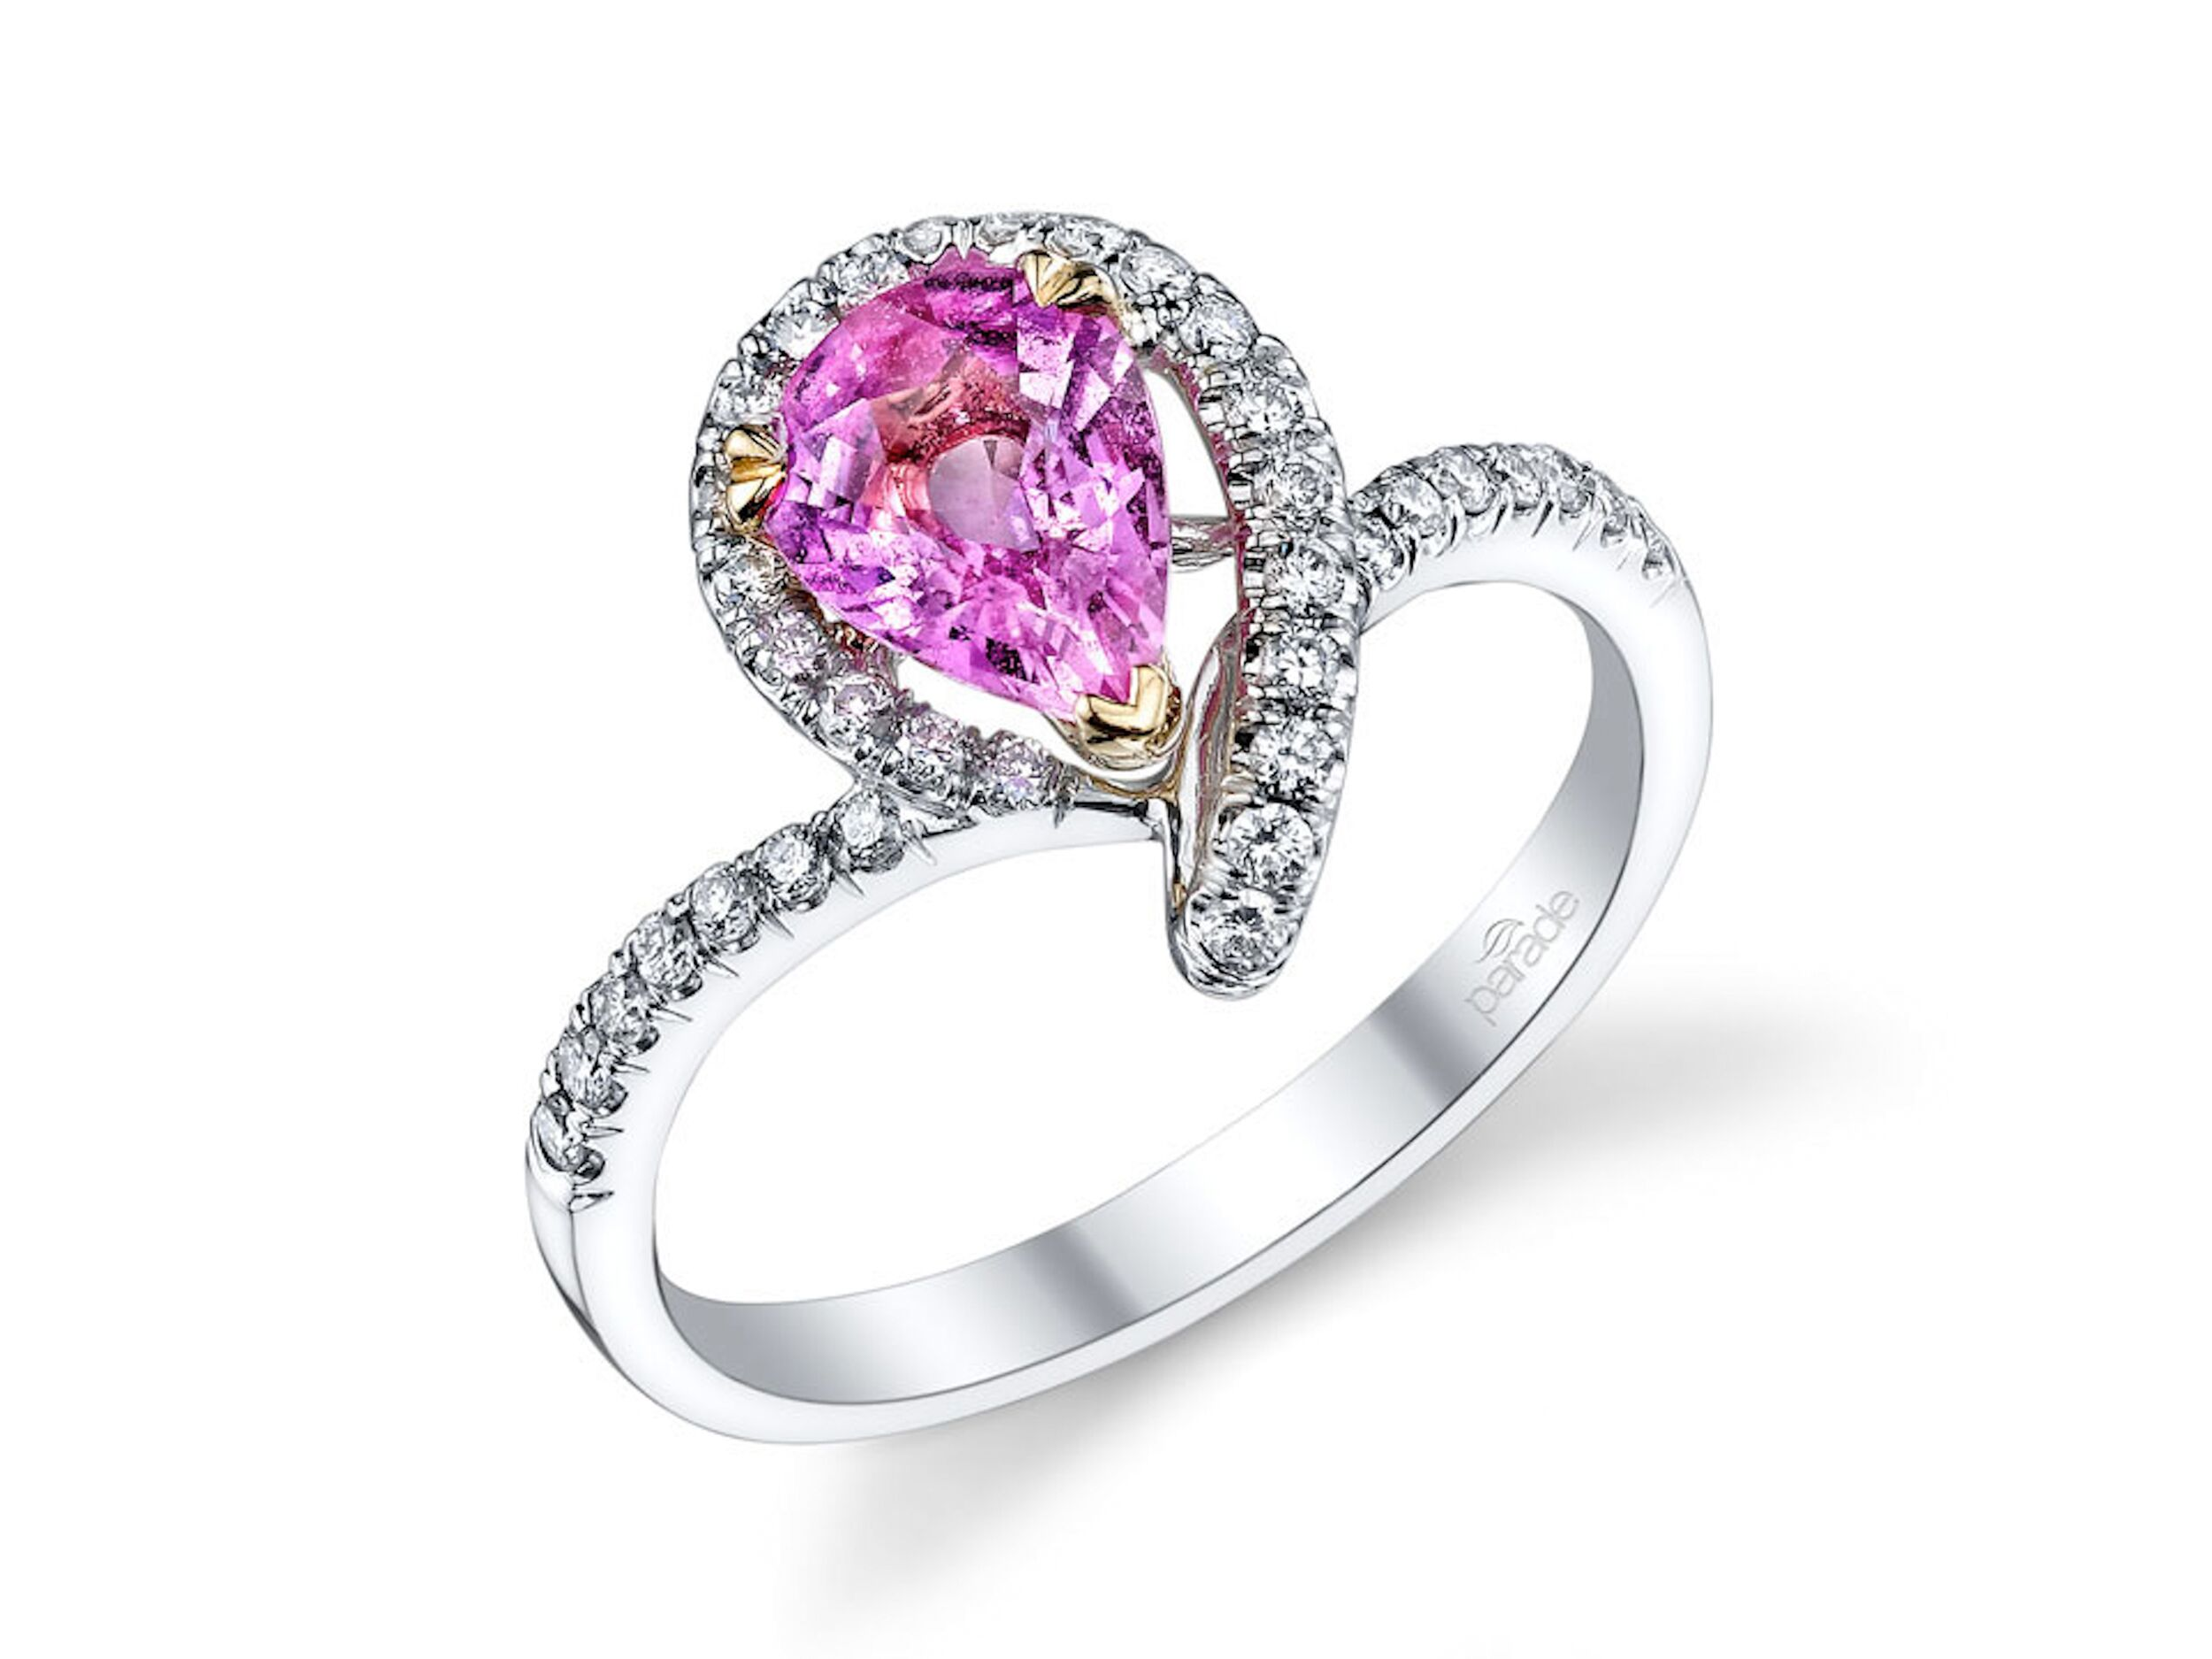 rose gold ring morganite pink diamond stone product charm rings engagement centres